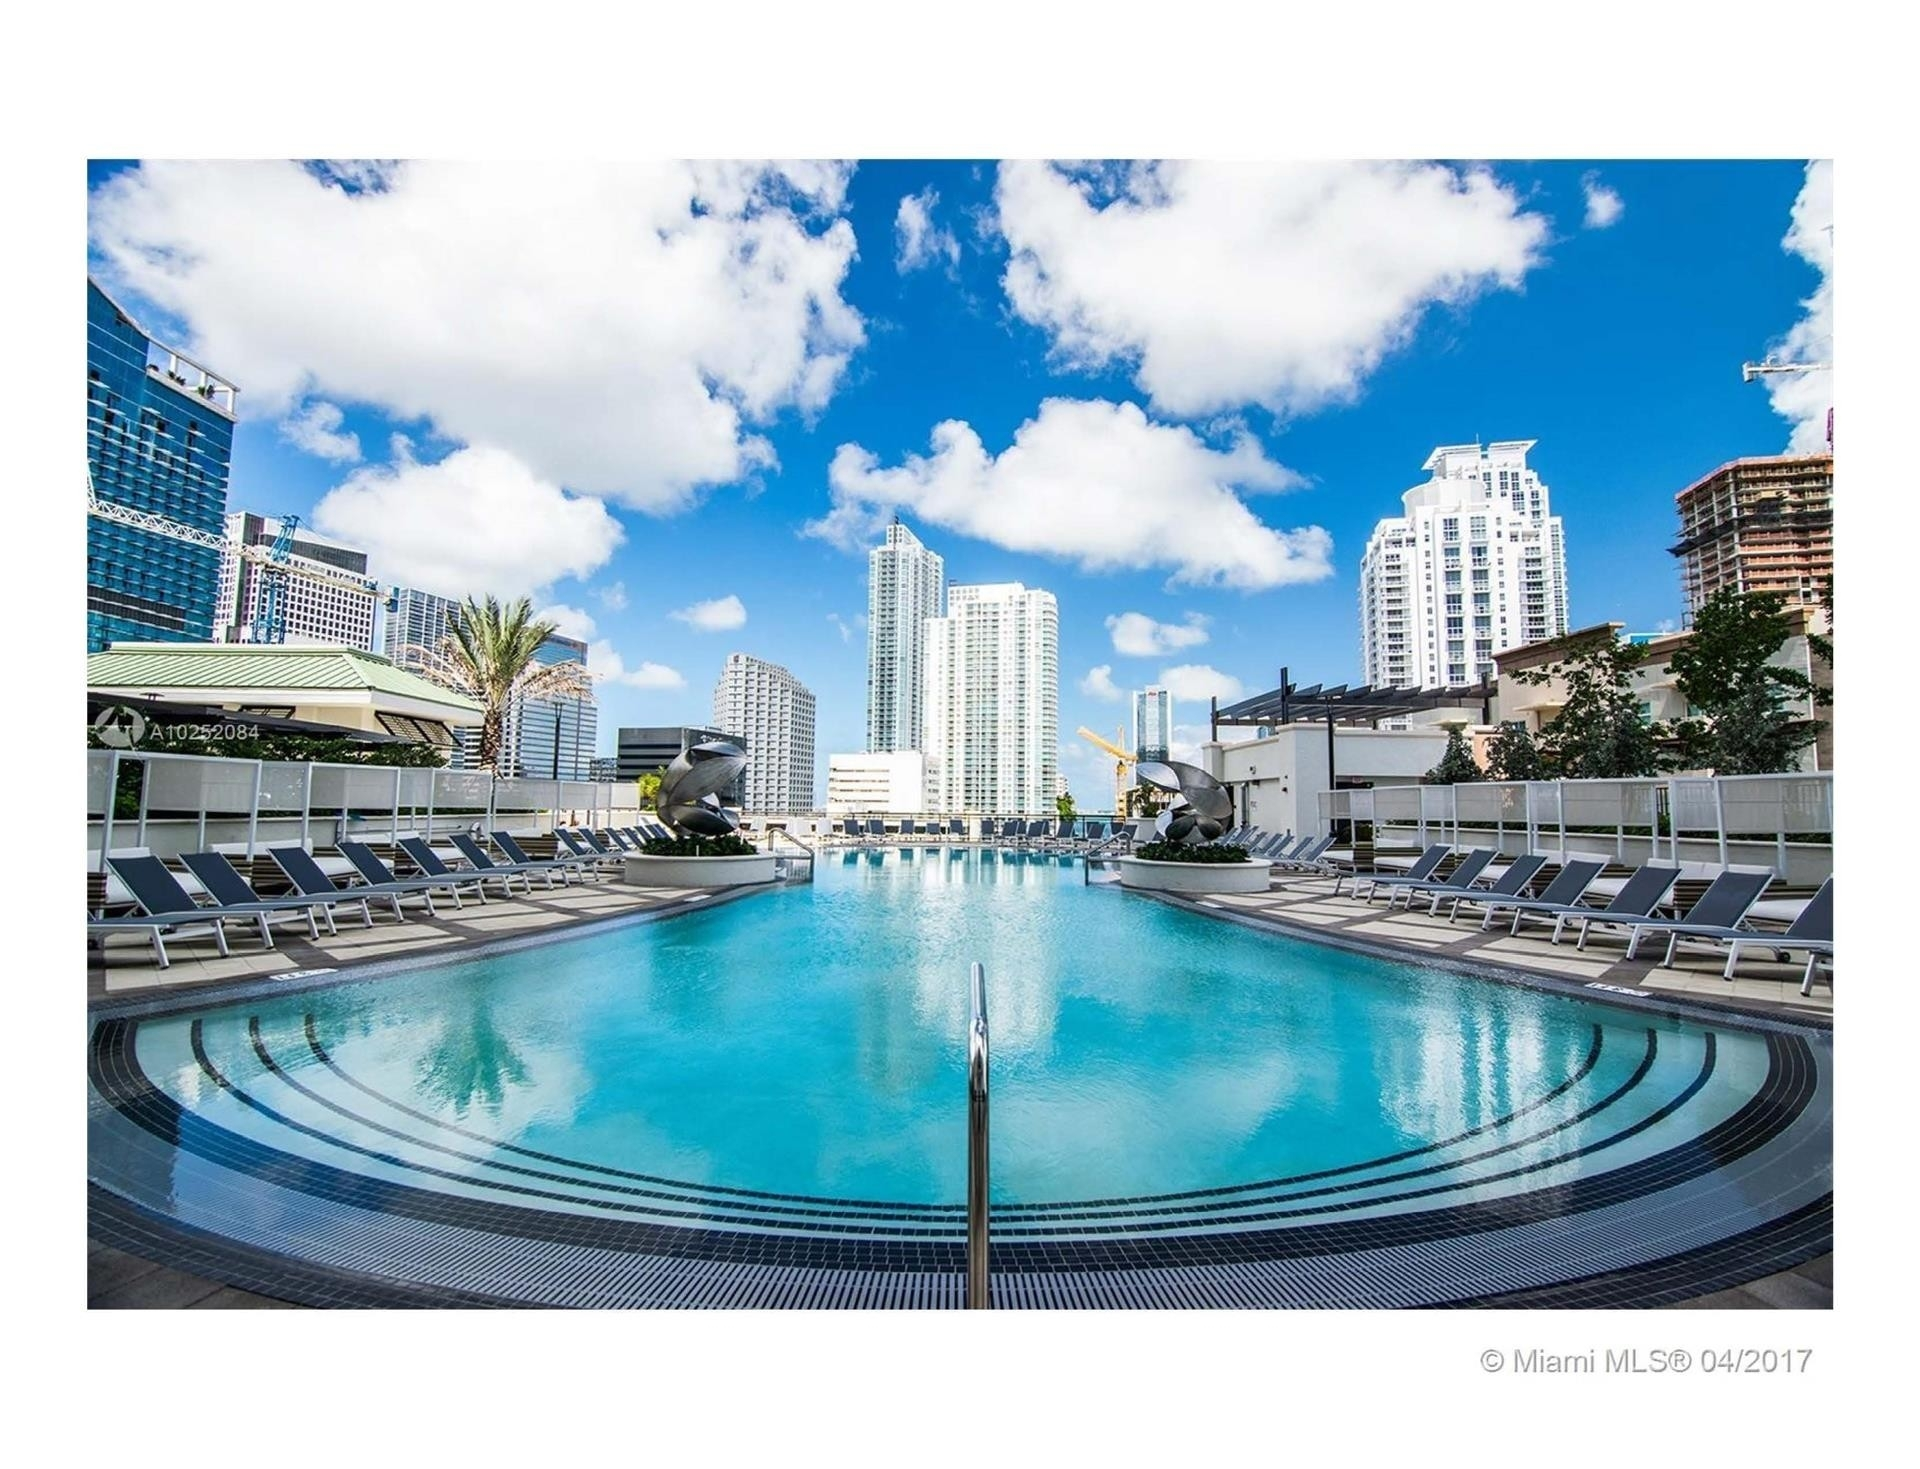 Property at 999 SW 1st Ave , 2717 Miami Financial District, Miami, FL 33130